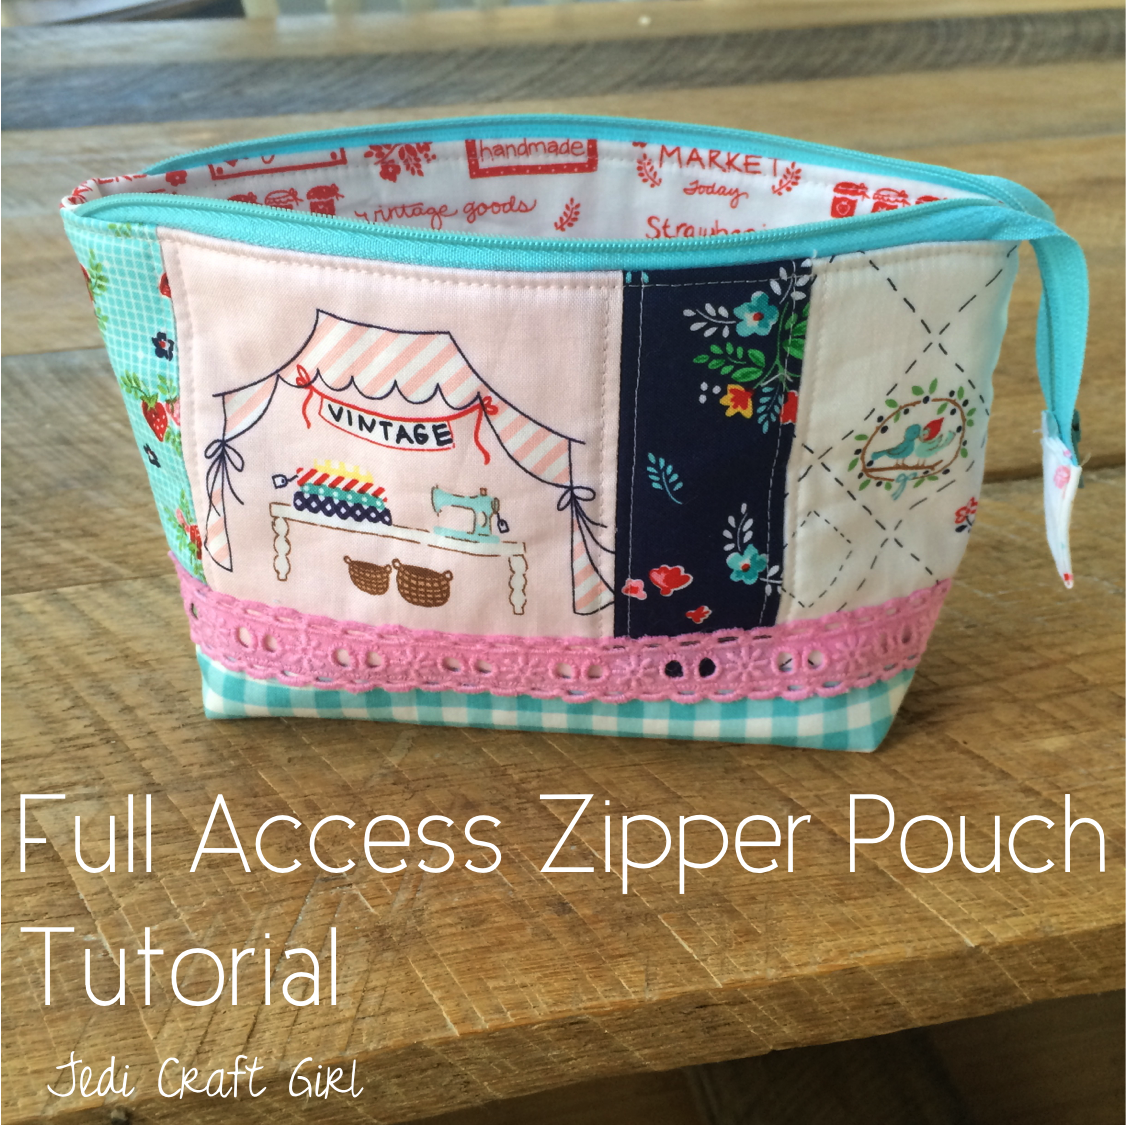 Full Access Zipper Pouch Tutorial Sewing Pinterest Tas Kosmetik Bag Dompet Sj0002 How To Make This Cute Pieced And Quilted Fabric Used Here For Front Panel